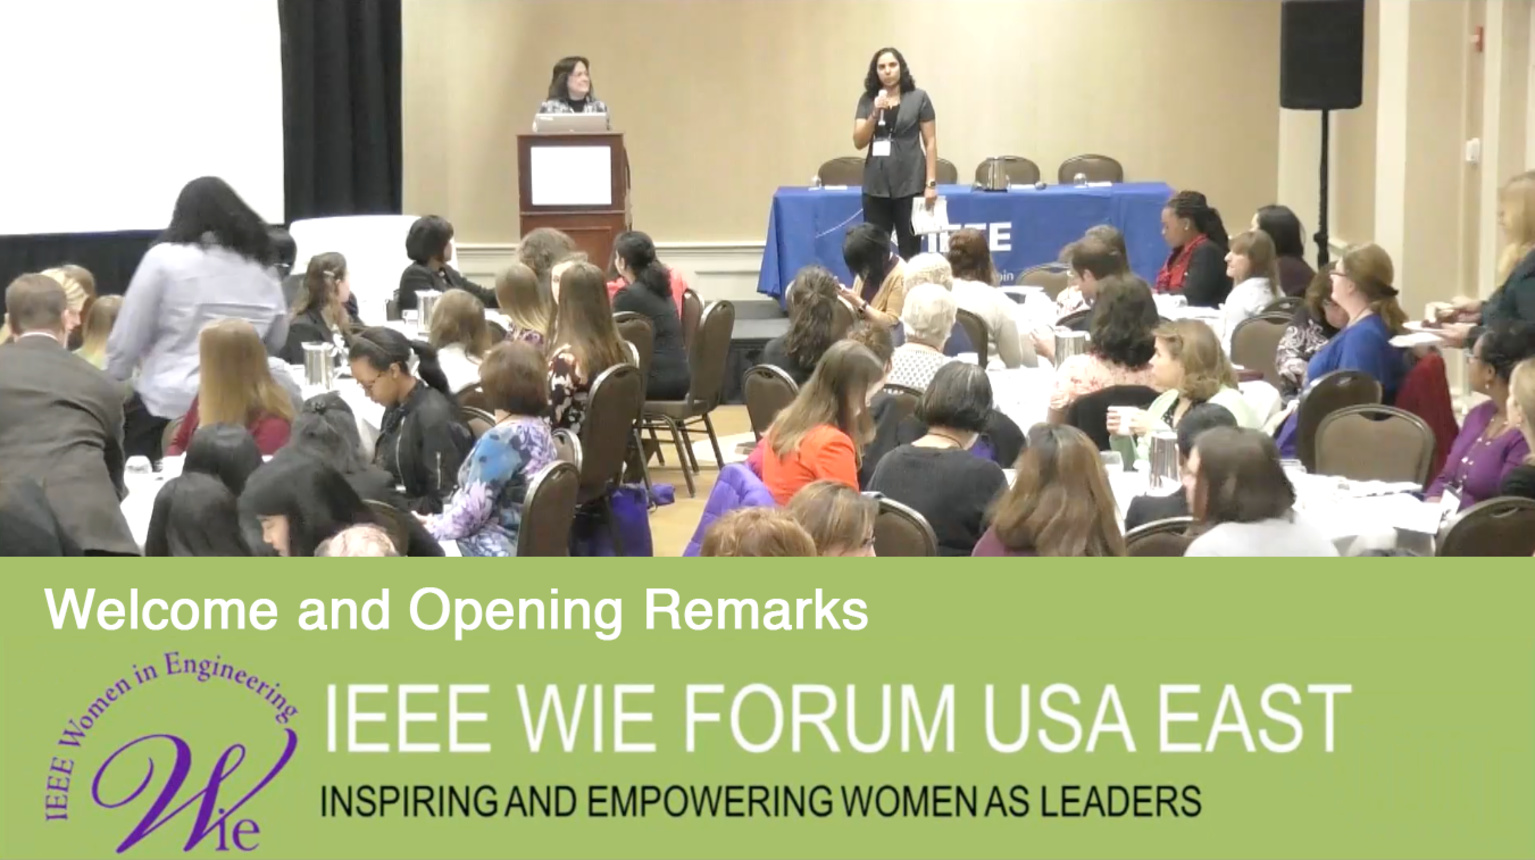 Opening Remarks: IEEE WIE Forum USA East 2017